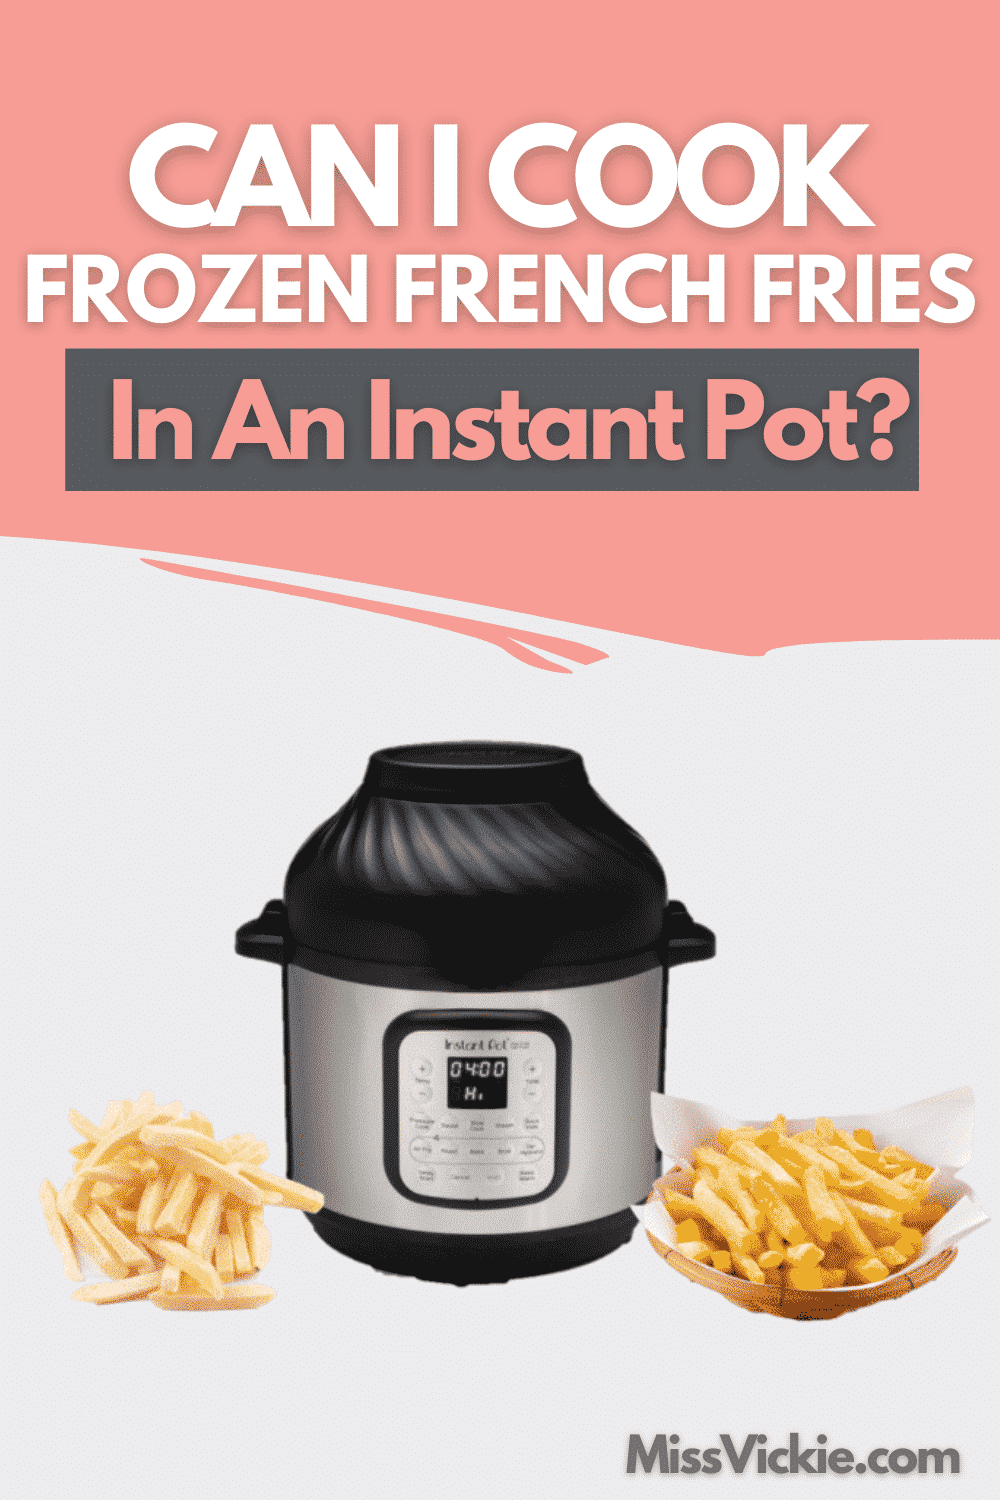 Can I Cook Frozen French Fries In An Instant Pot